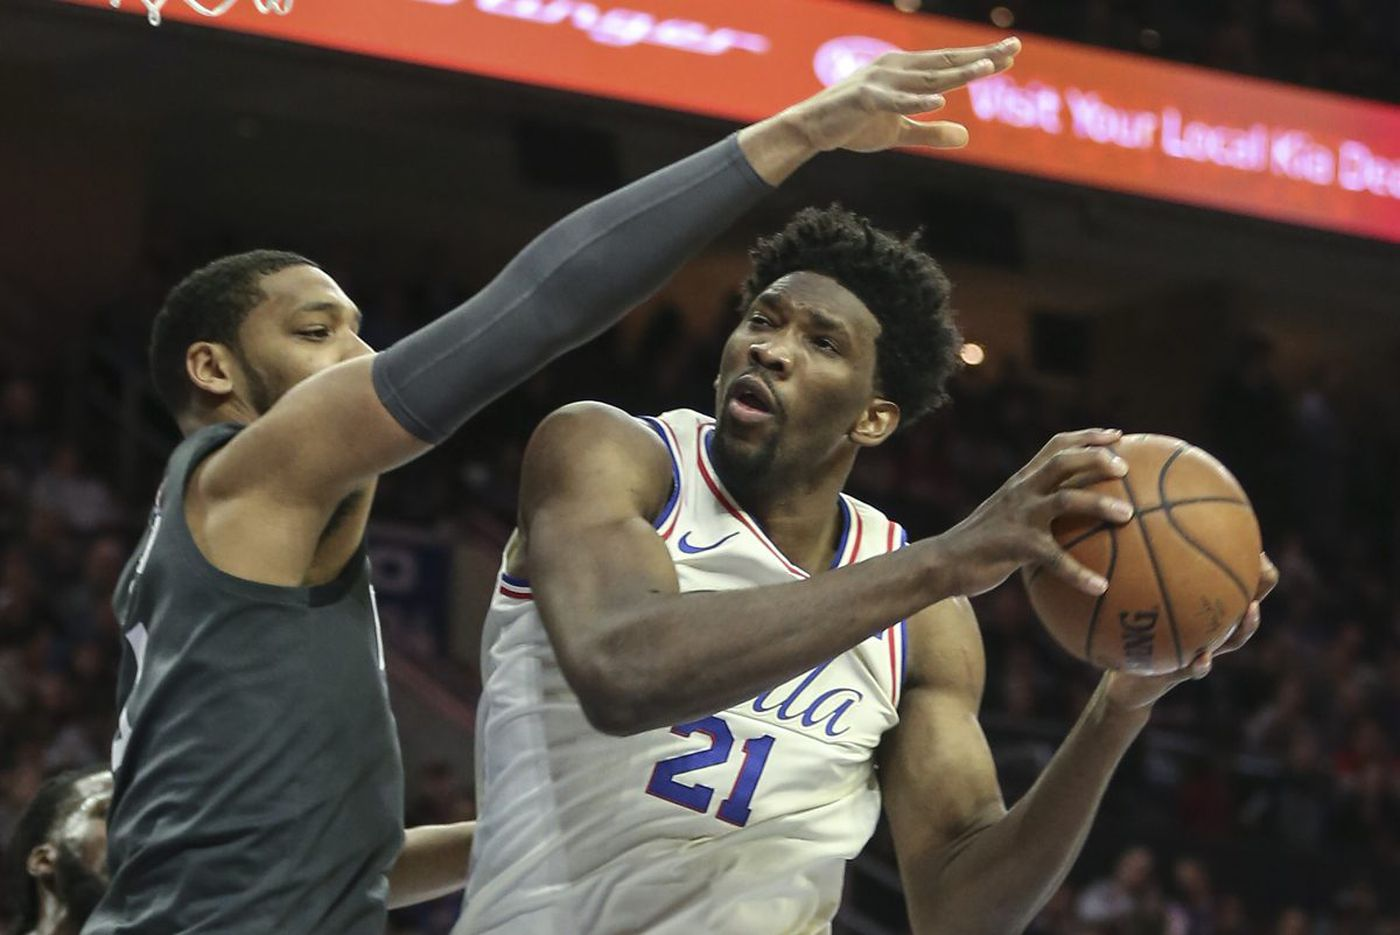 Sixers center Joel Embiid still miles away from reaching his potential